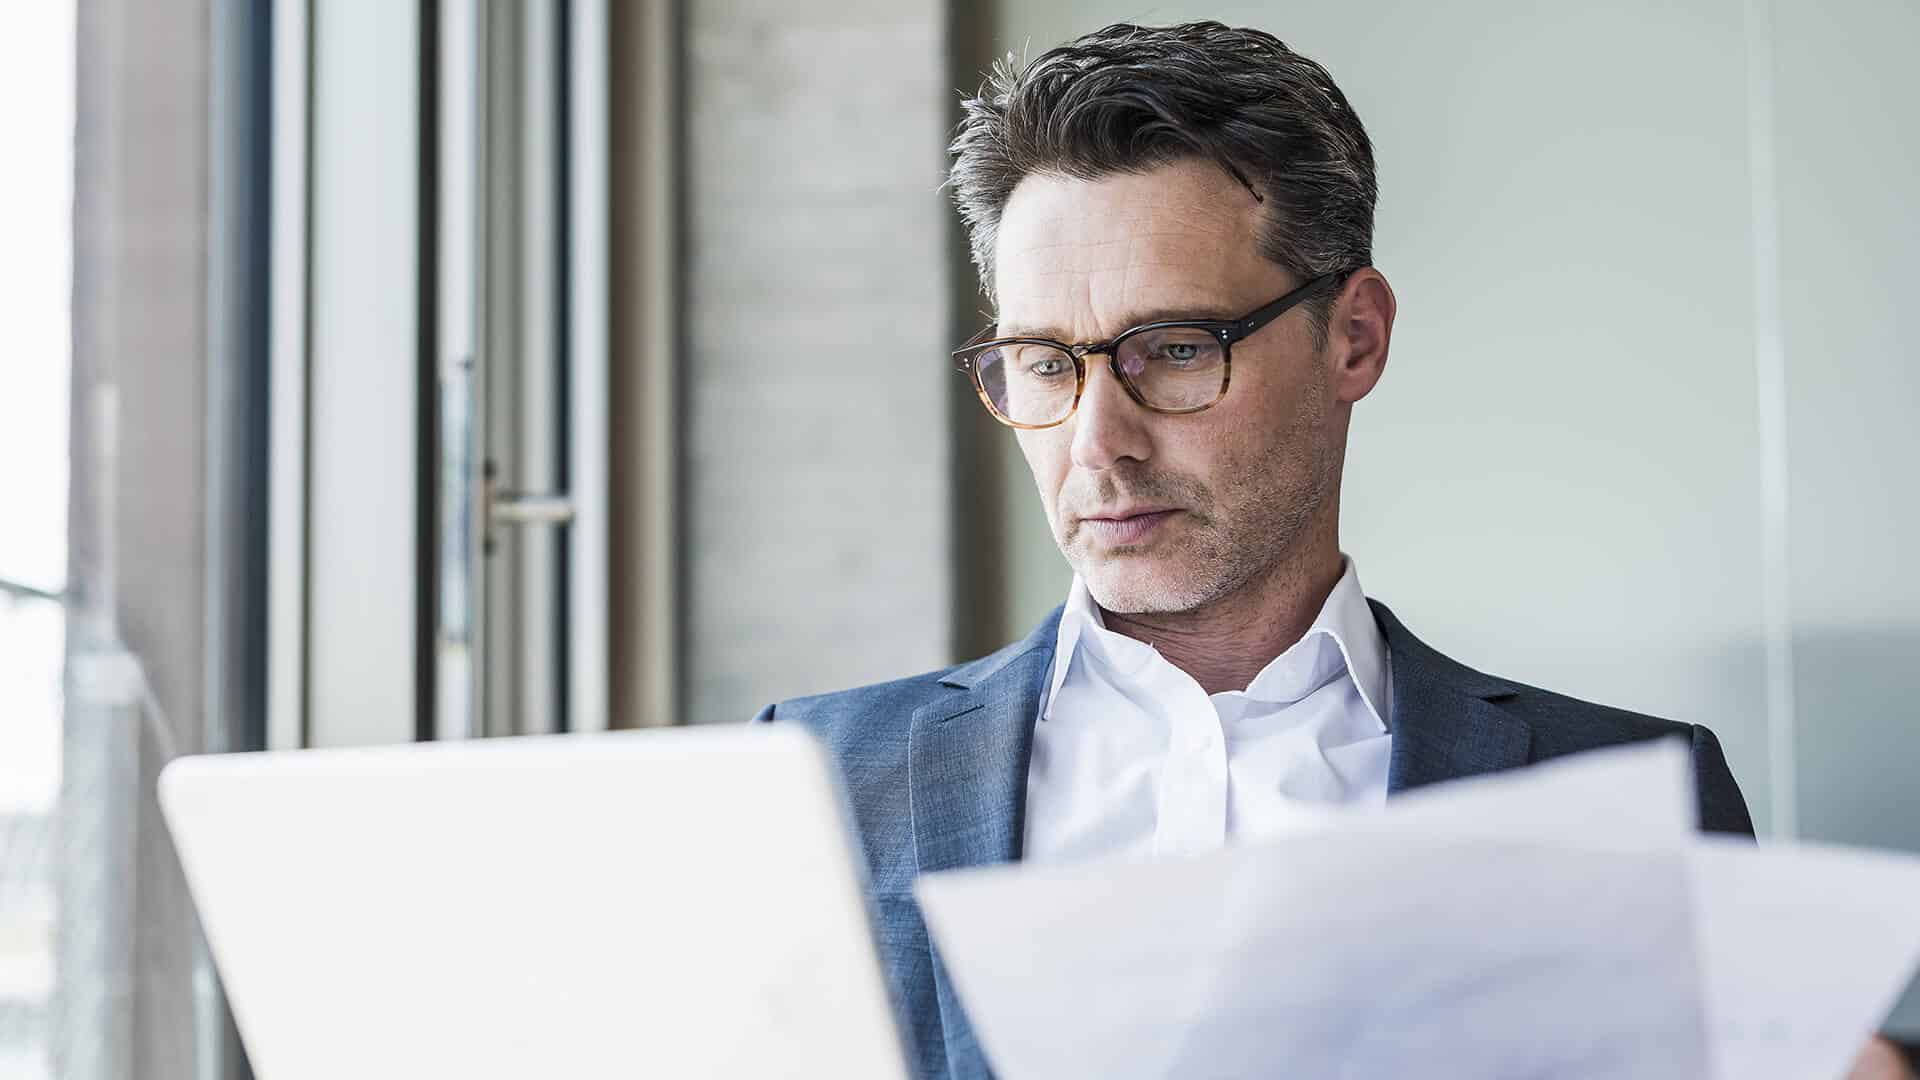 Reviewing Third-Party Financial Statements? Watch Out for These Red Flags